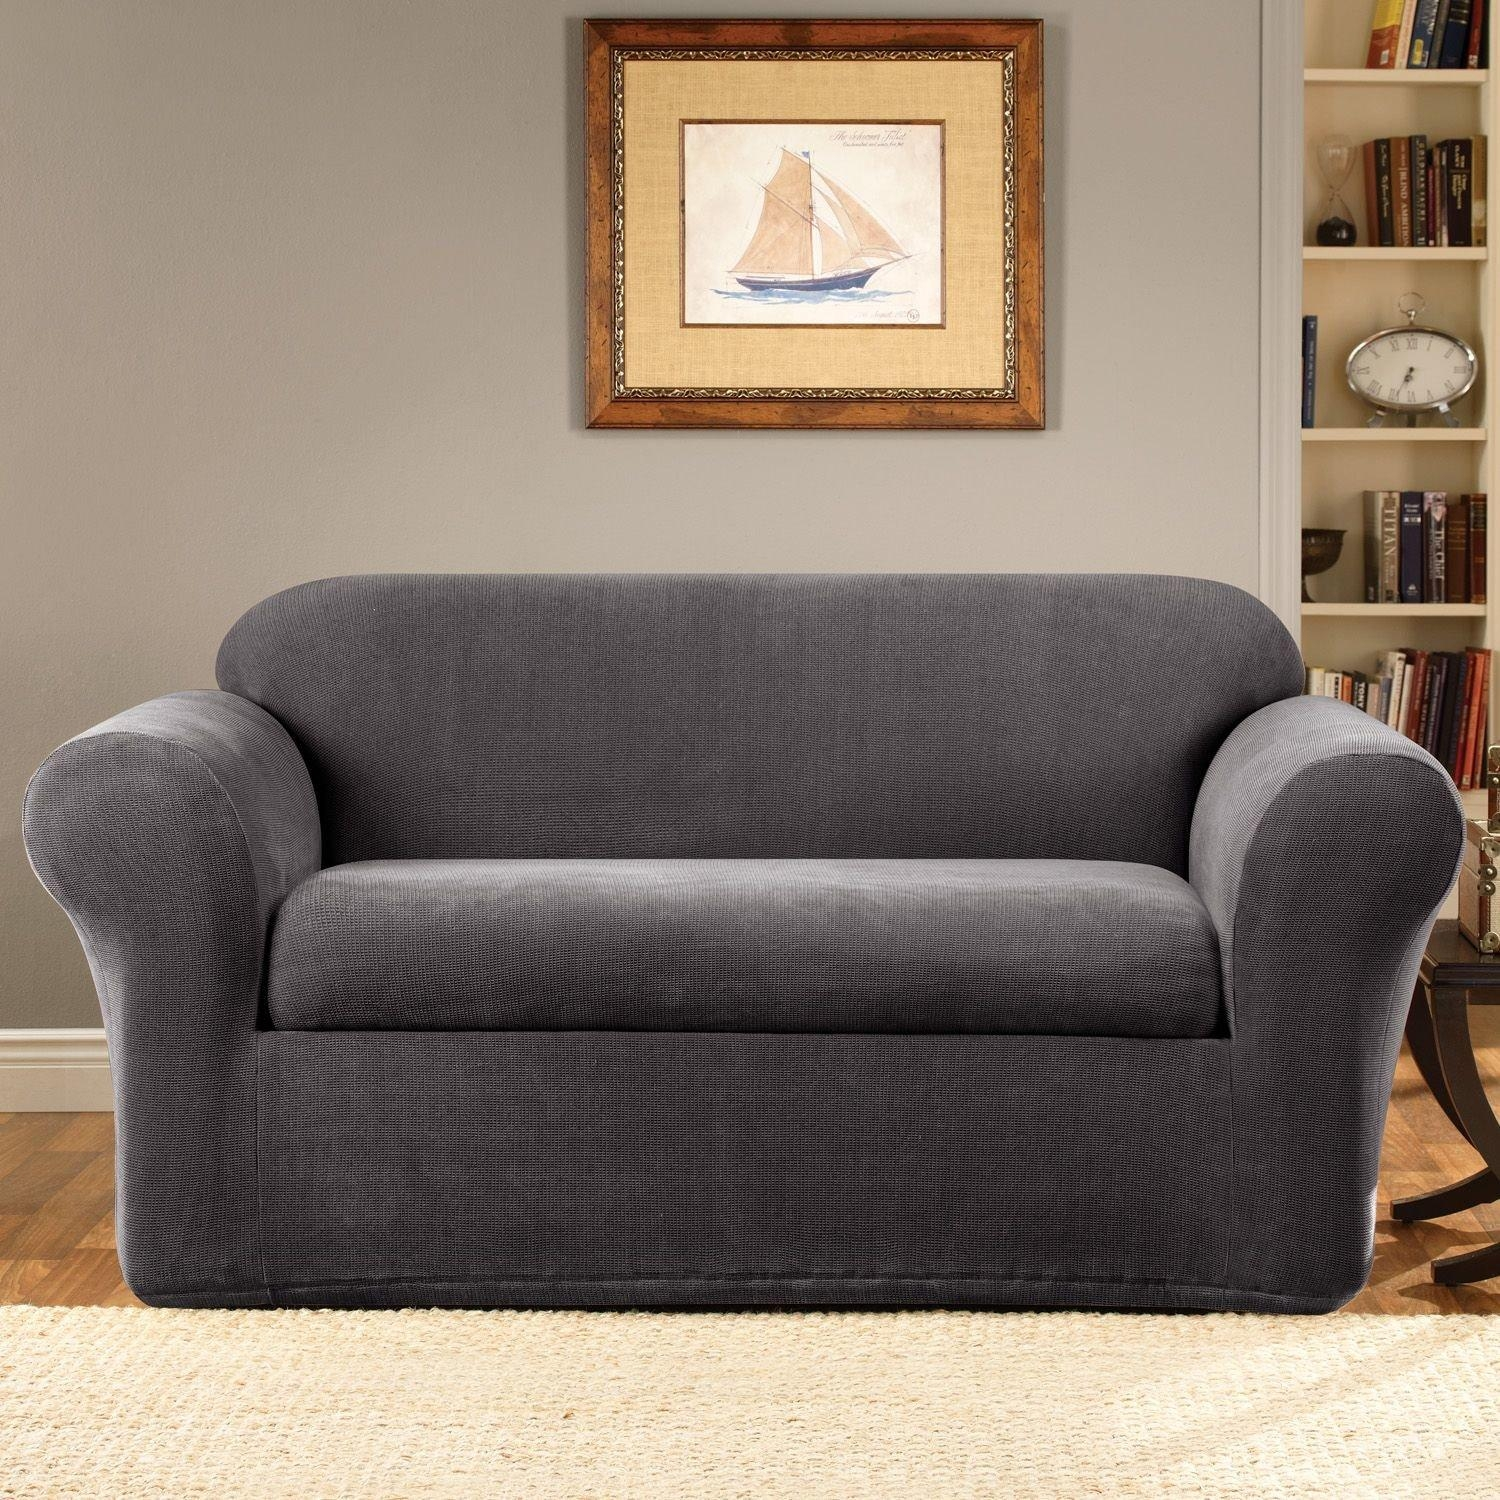 Sure Fit Stretch Suede 2 Piece Sofa Slipcover Chocolate In 2 Piece Sofa Covers (Image 24 of 27)